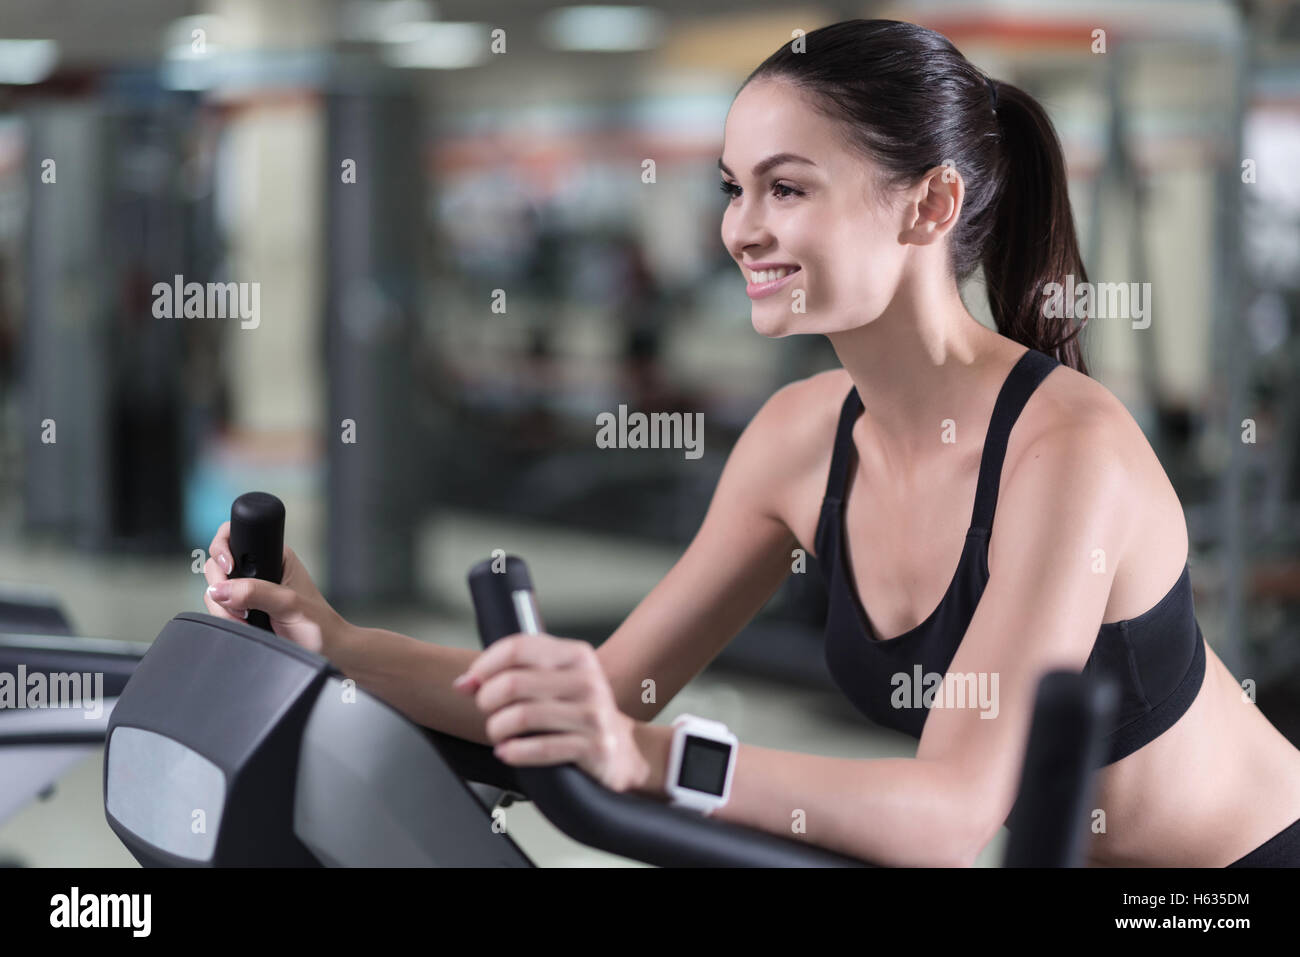 Smiling woman running on a treadmill - Stock Image